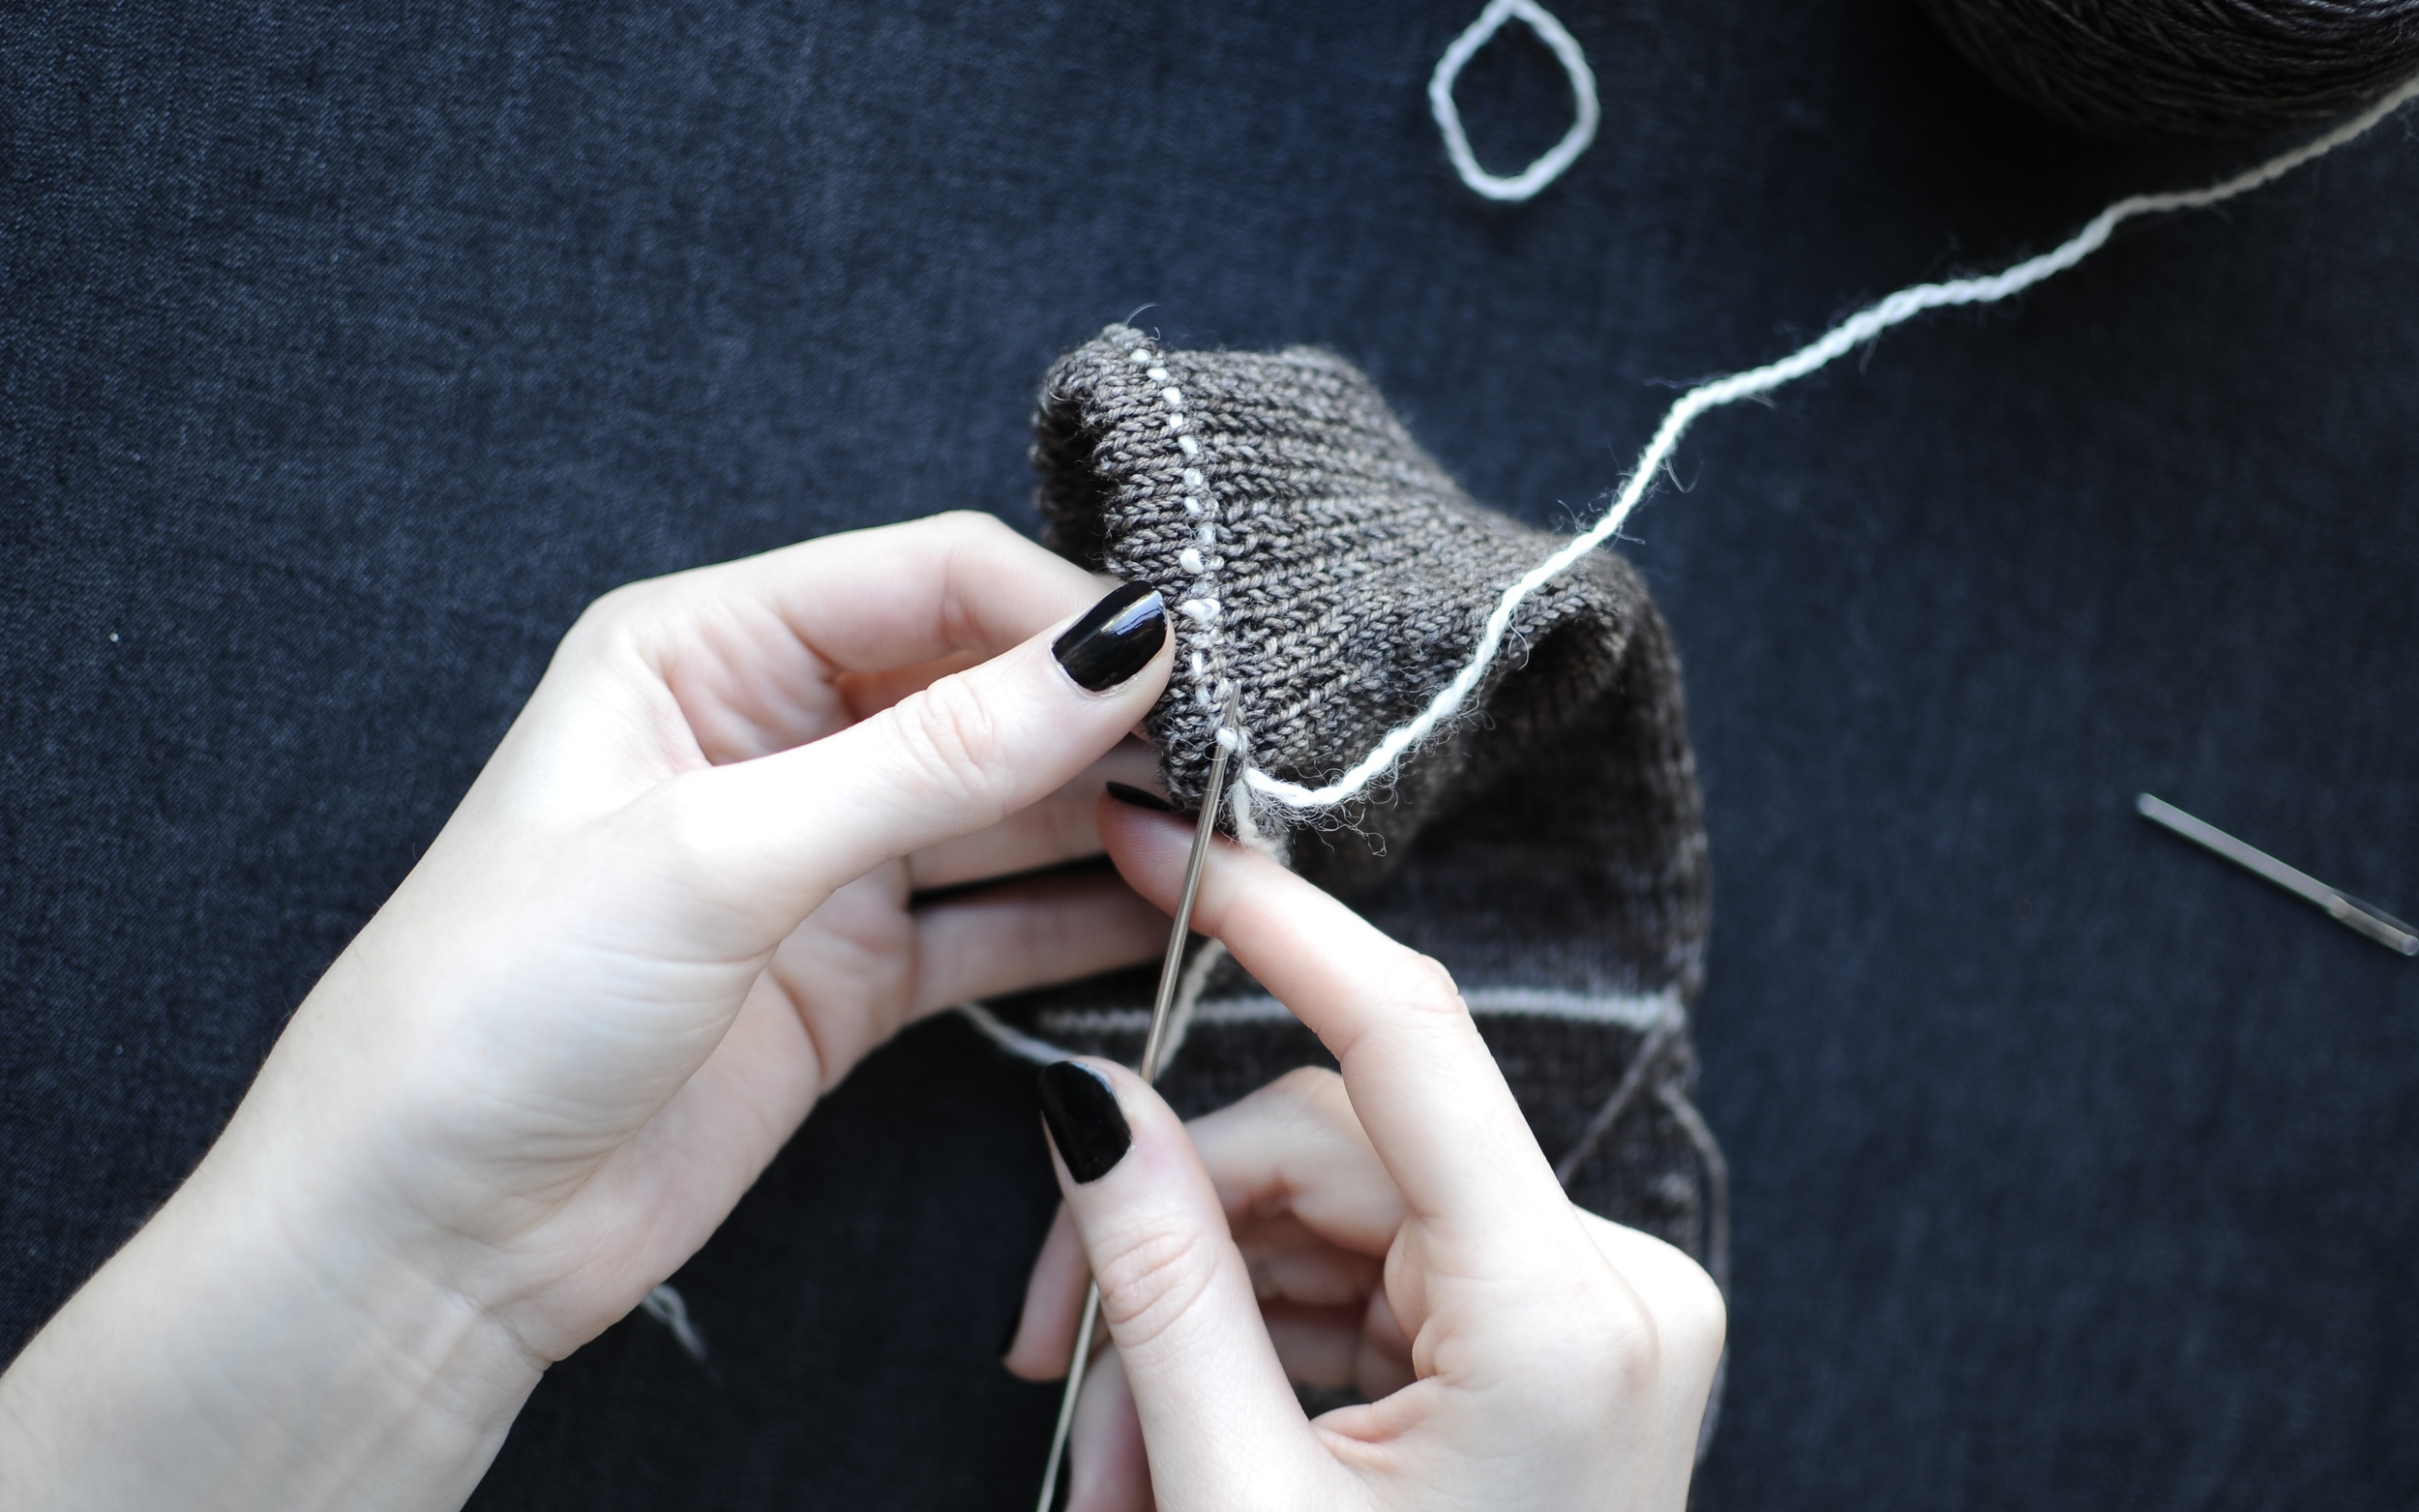 2. Start at the seam where you left Yarn B. Pick up the working yarn and begin to work in an anticlockwise direction. Insert the needle under Yarn B, as if to knit (in-between the stitches you used to sew down the picot hem).